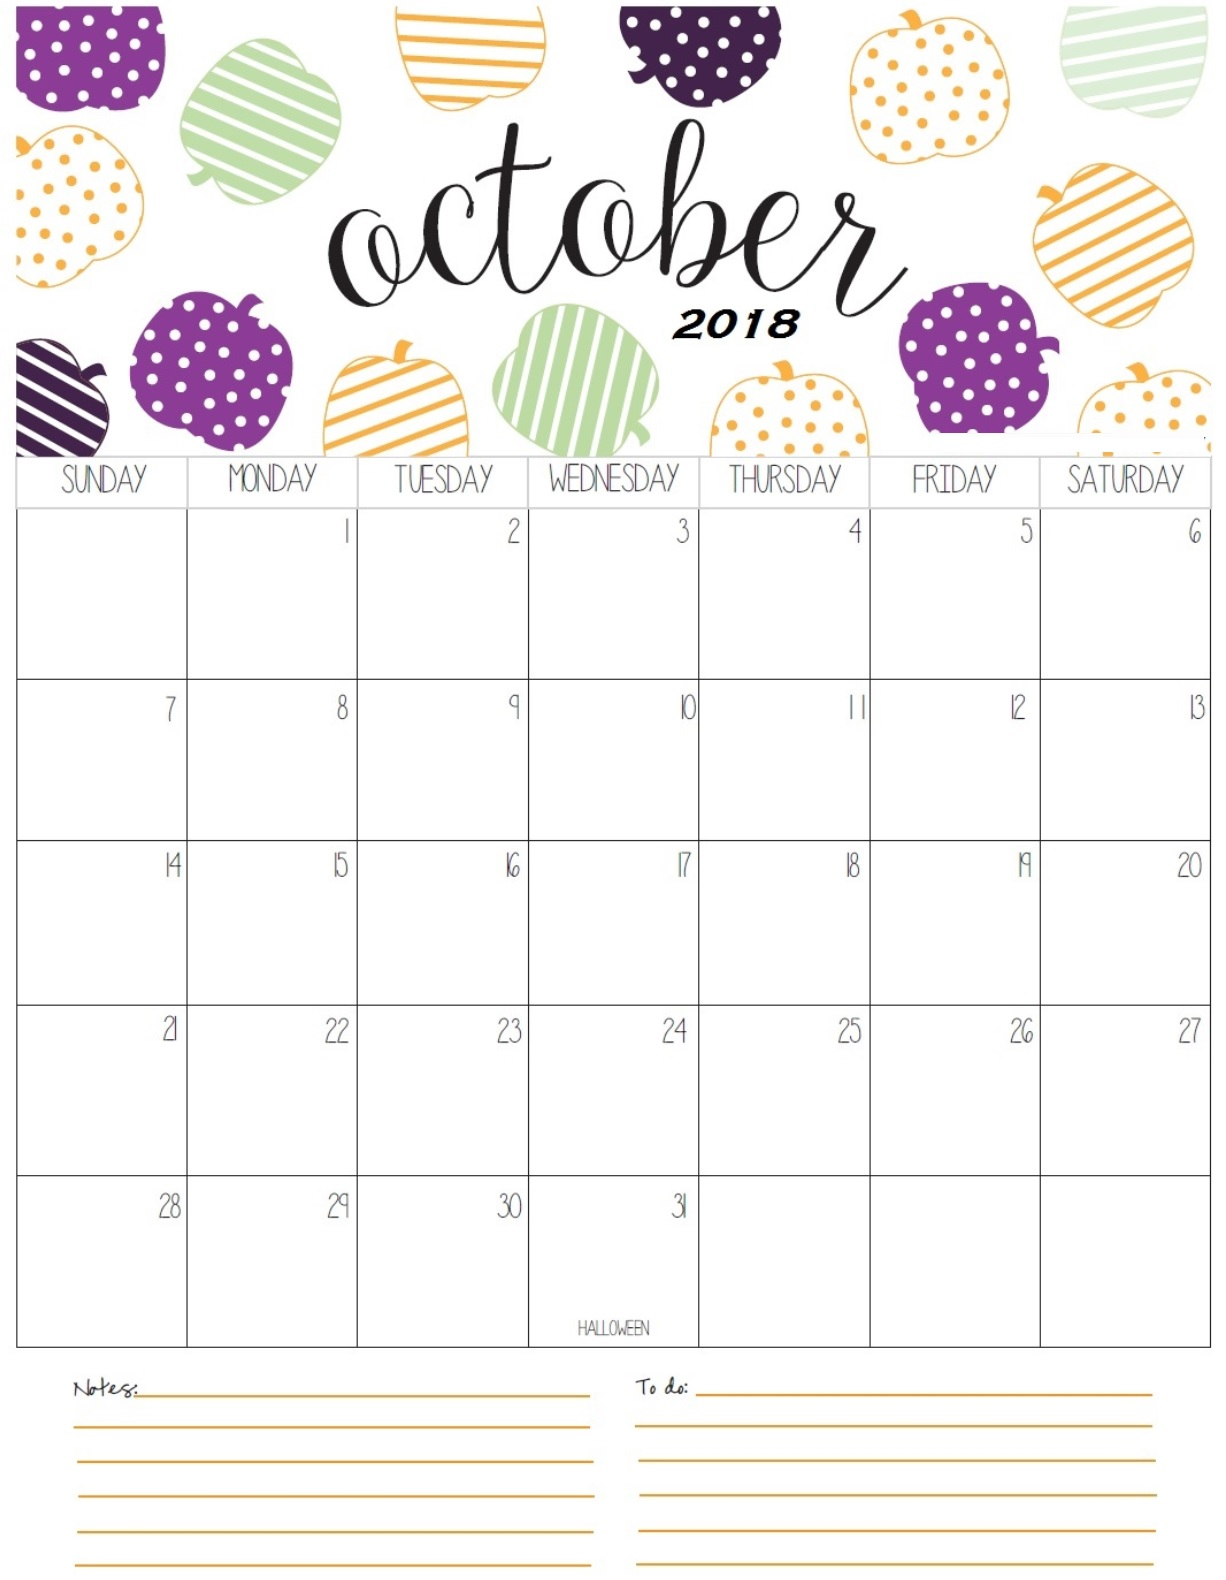 Downlaod October 2018 Calendar